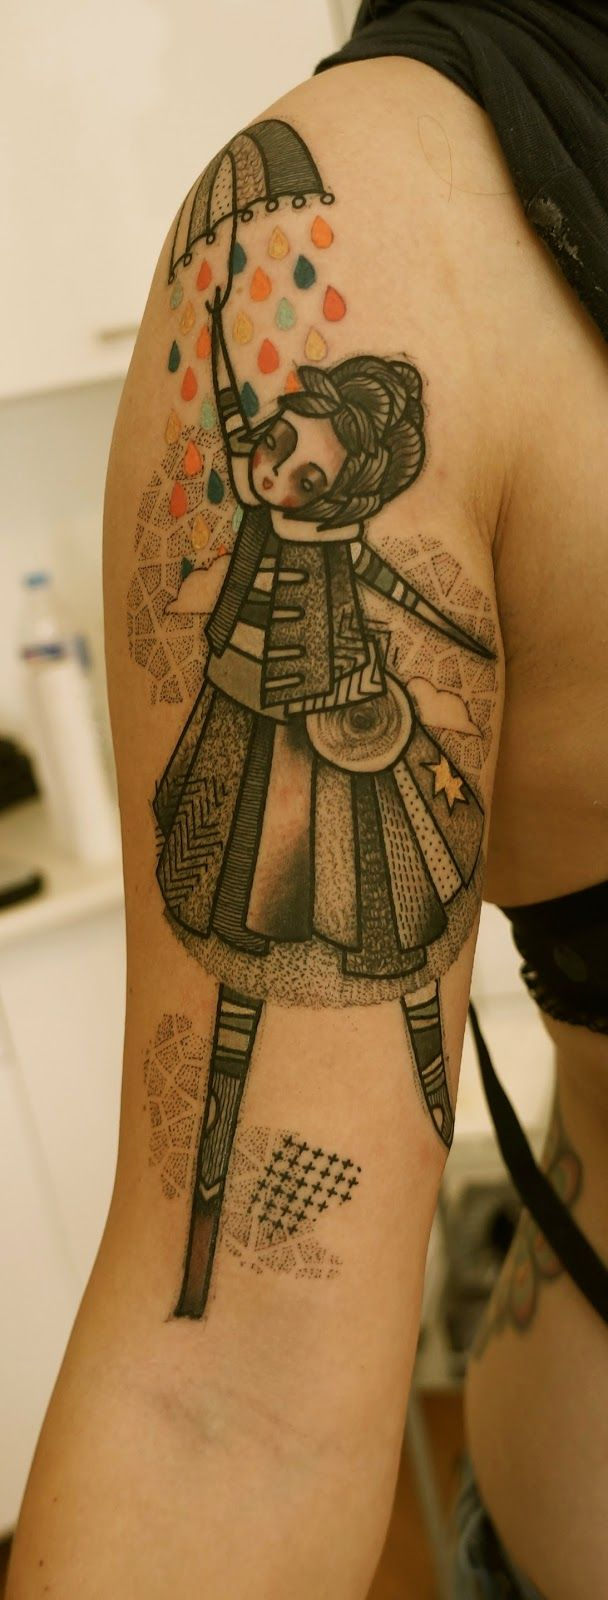 ART BY NOON: TATTOO OF THE DAY....